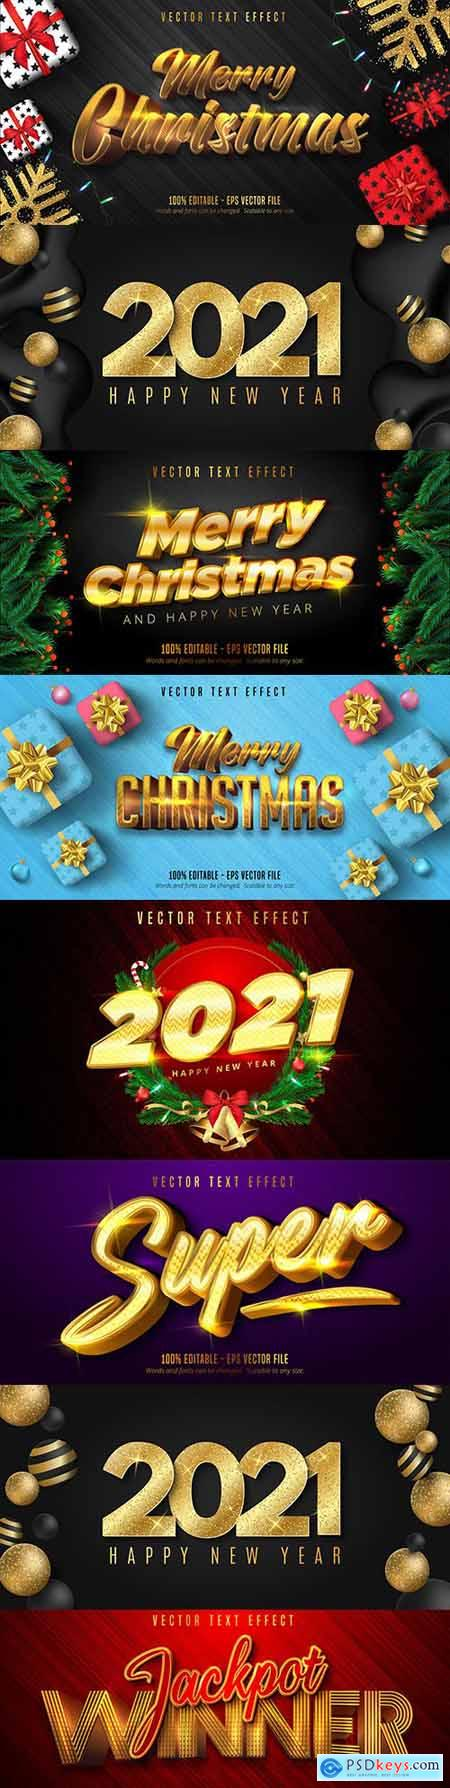 Merry Christmas editable font effect text collection design